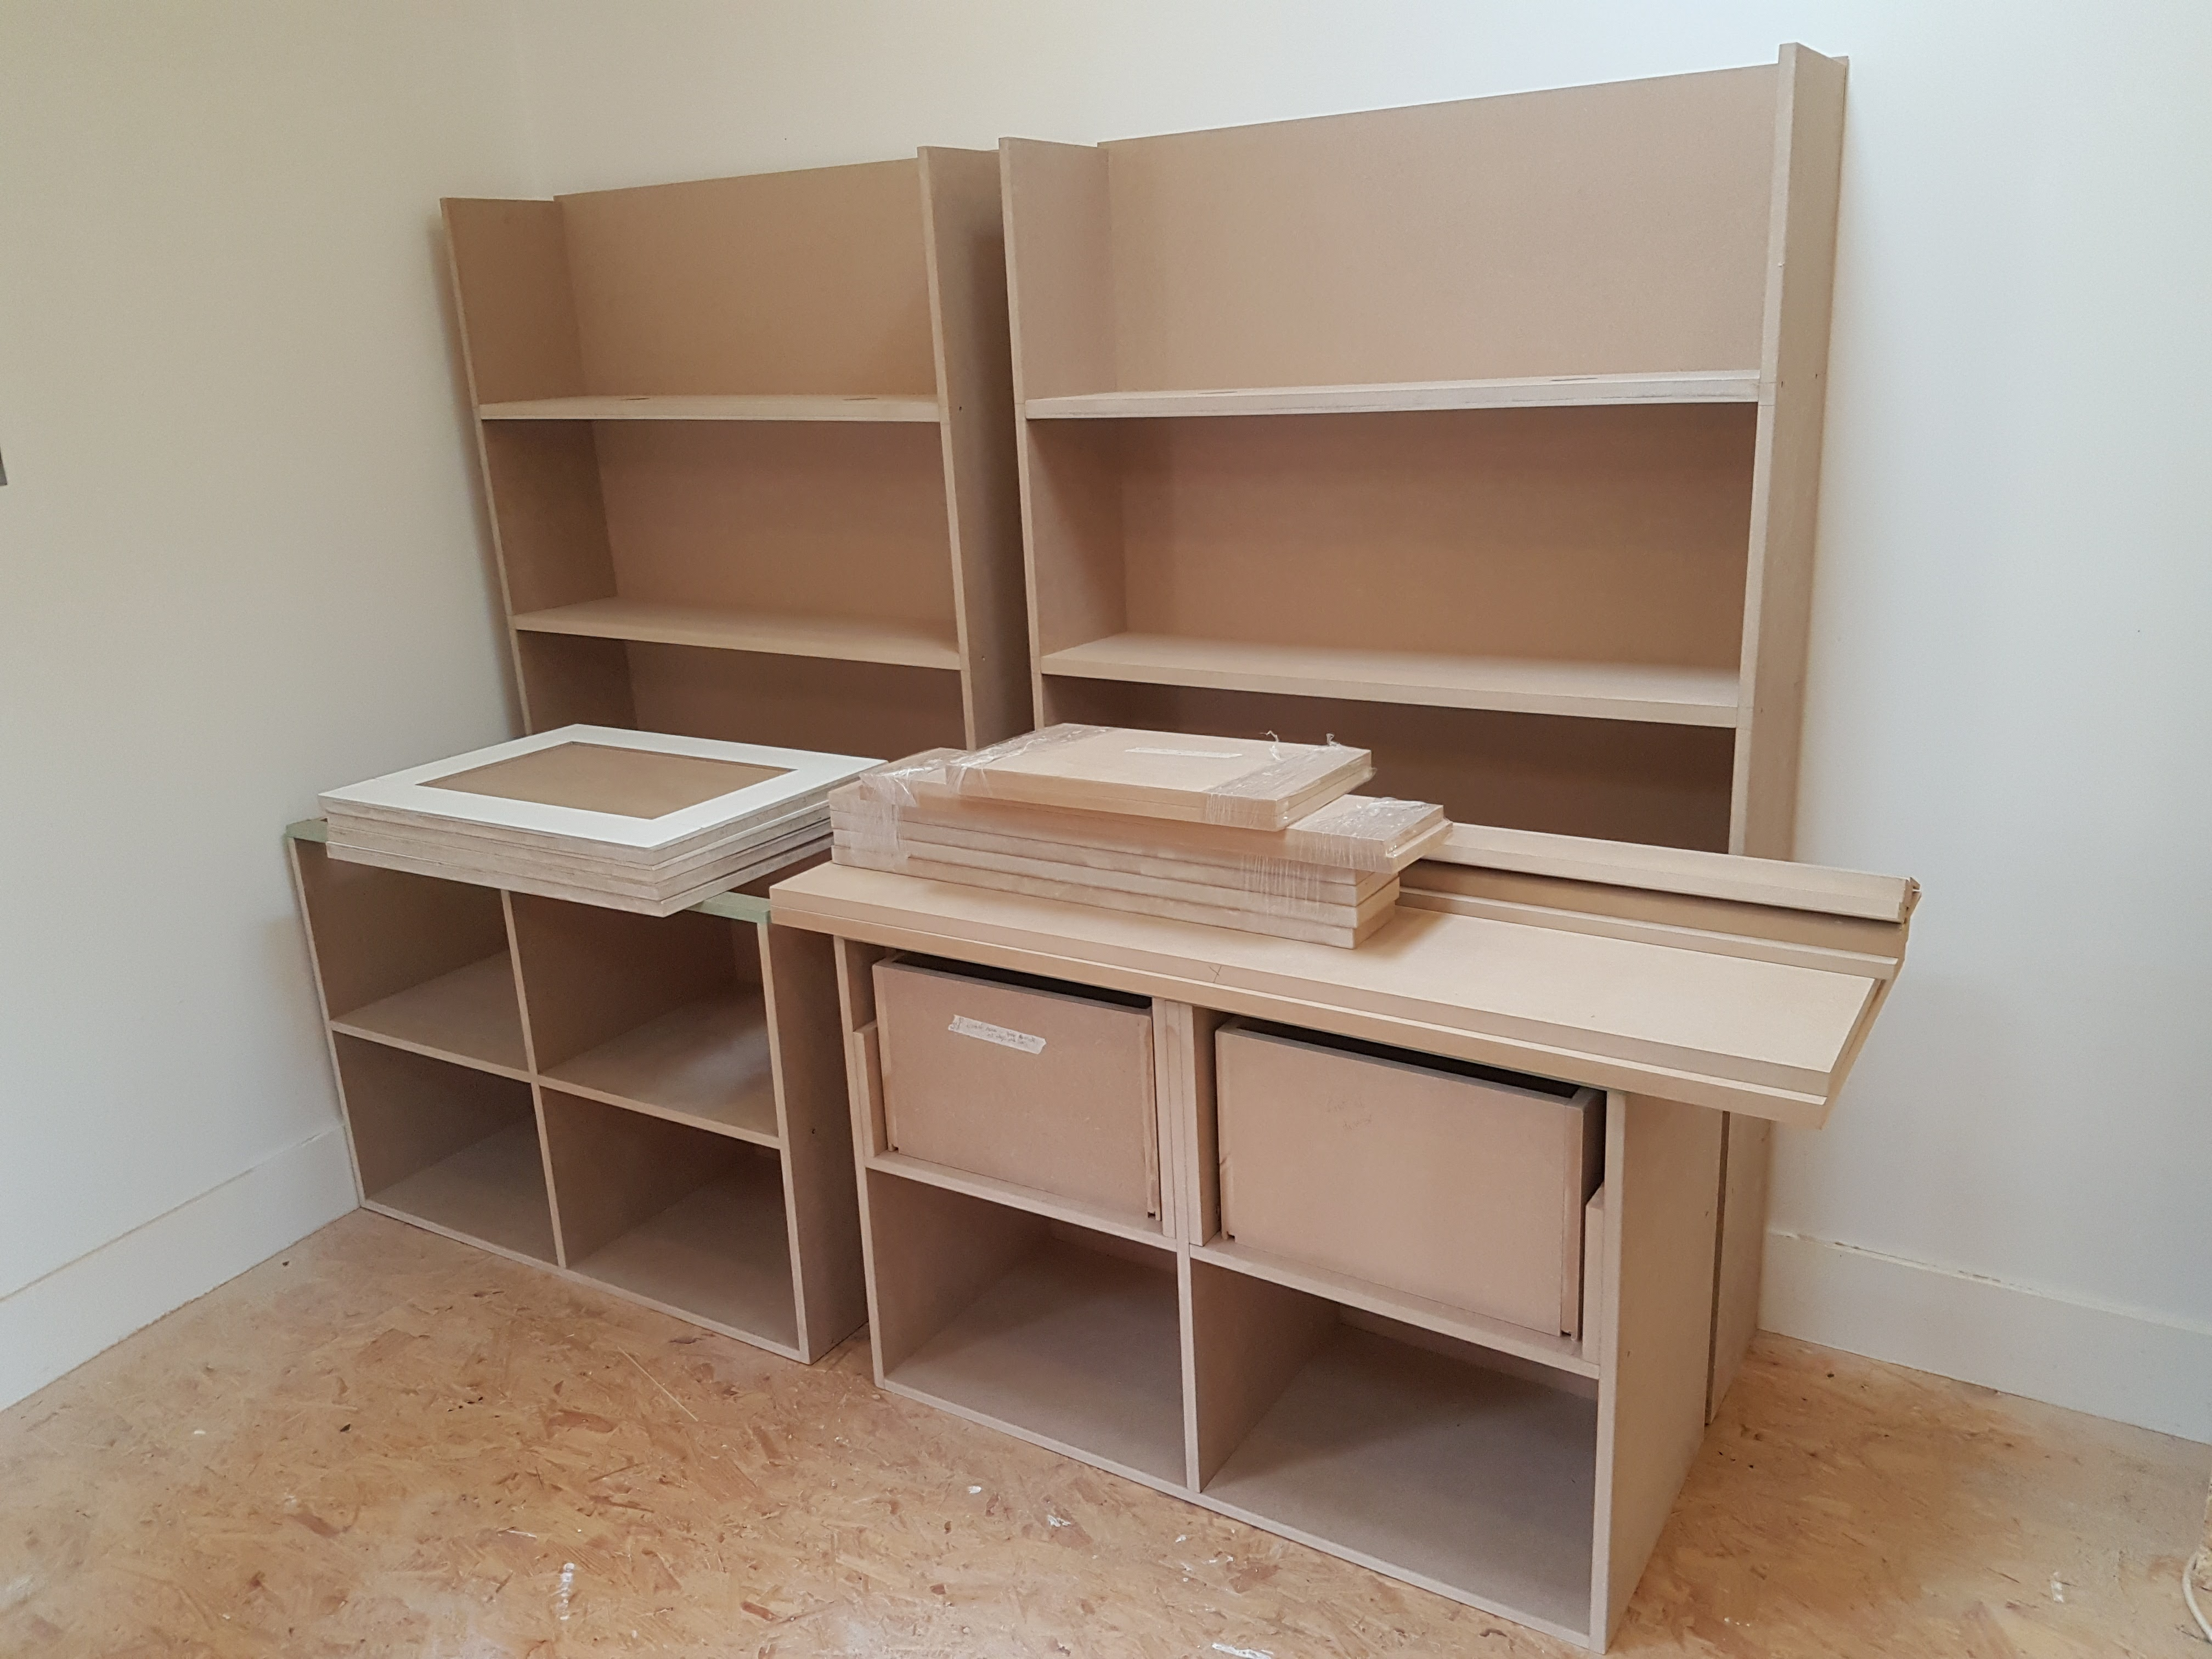 SPRAY FINISHED ALCOVE CABINETS 2